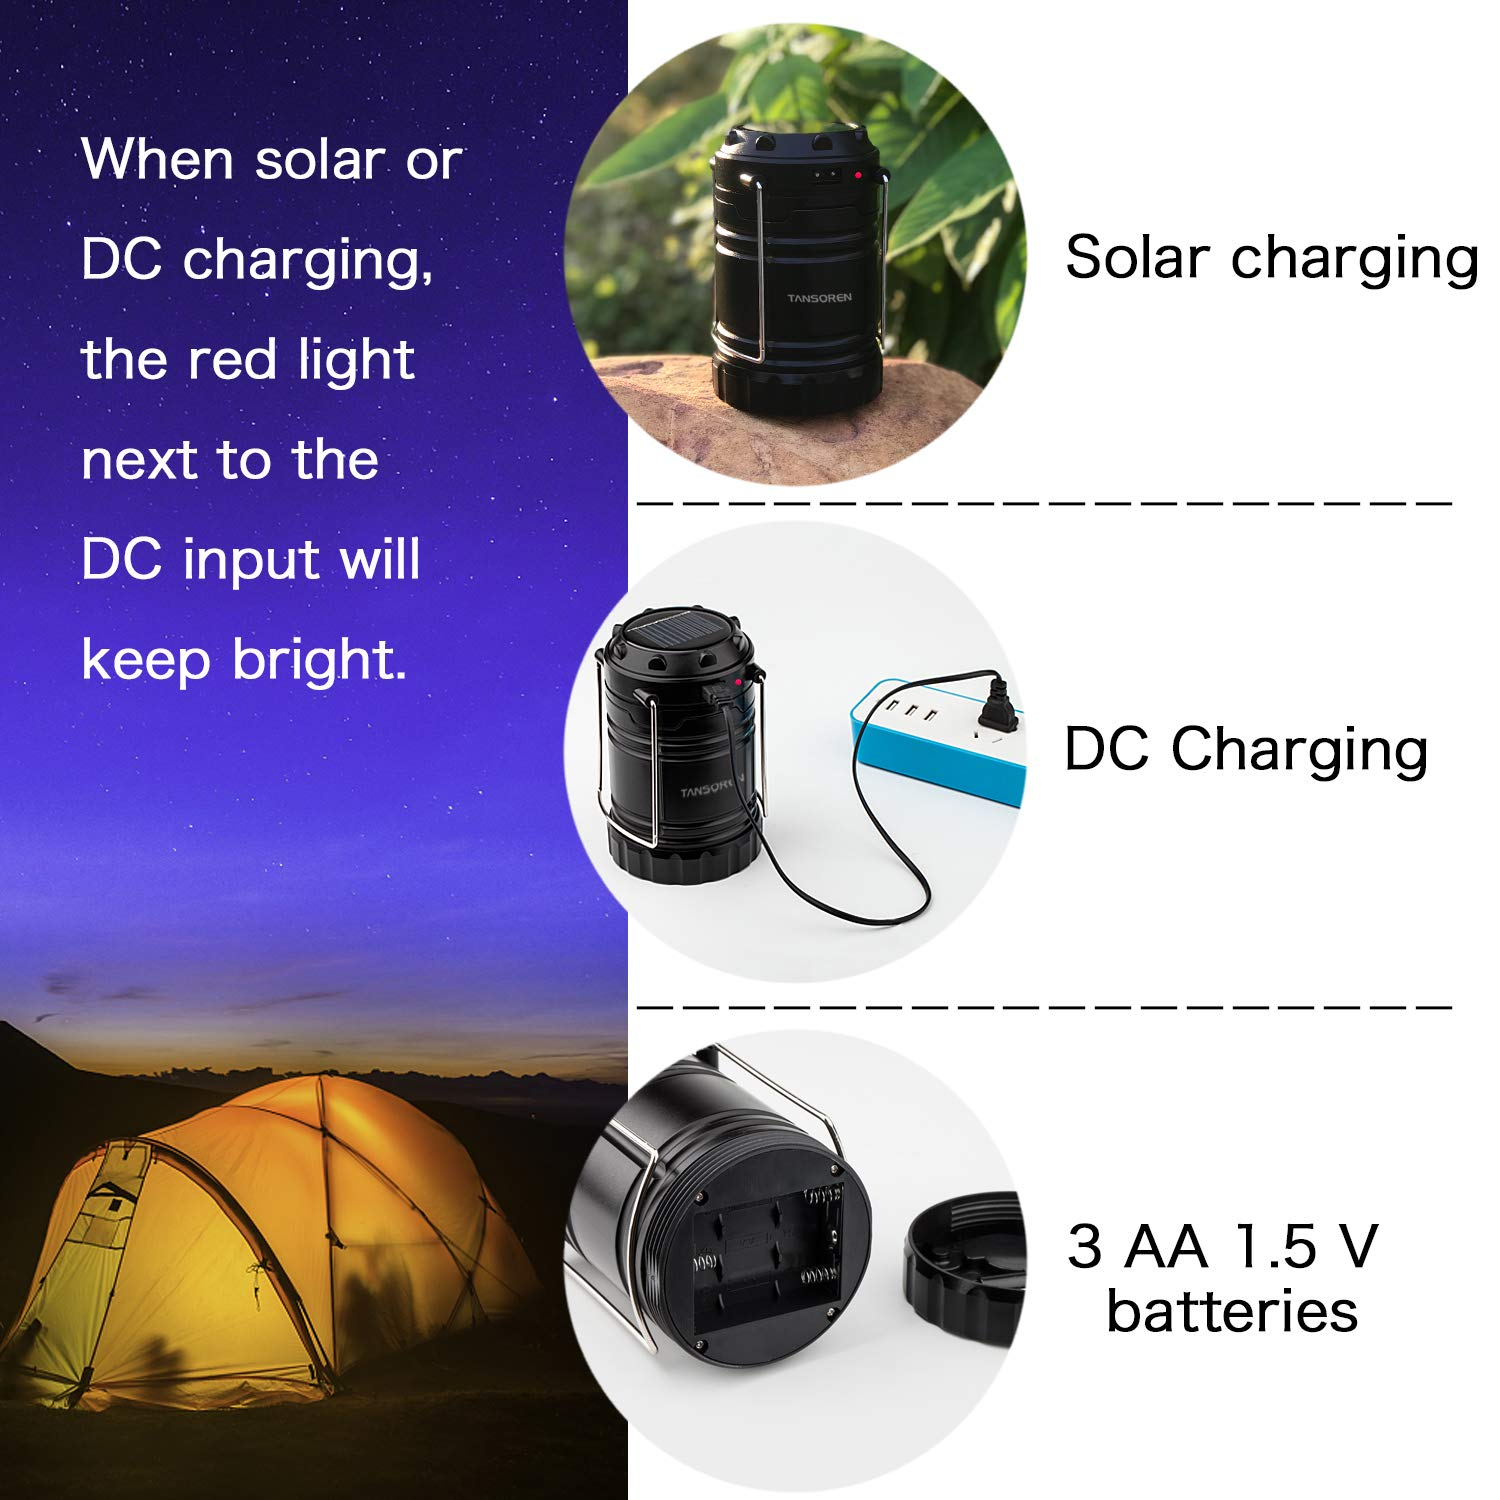 4 Pack Solar USB Rechargeable 3 AA Power Brightest COB LED Camping Lantern with Magnetic Base, Charging for Android, Waterproof Collapsible Emergency LED Light【2018 UPGRADED】 by TANSOREN (Image #3)